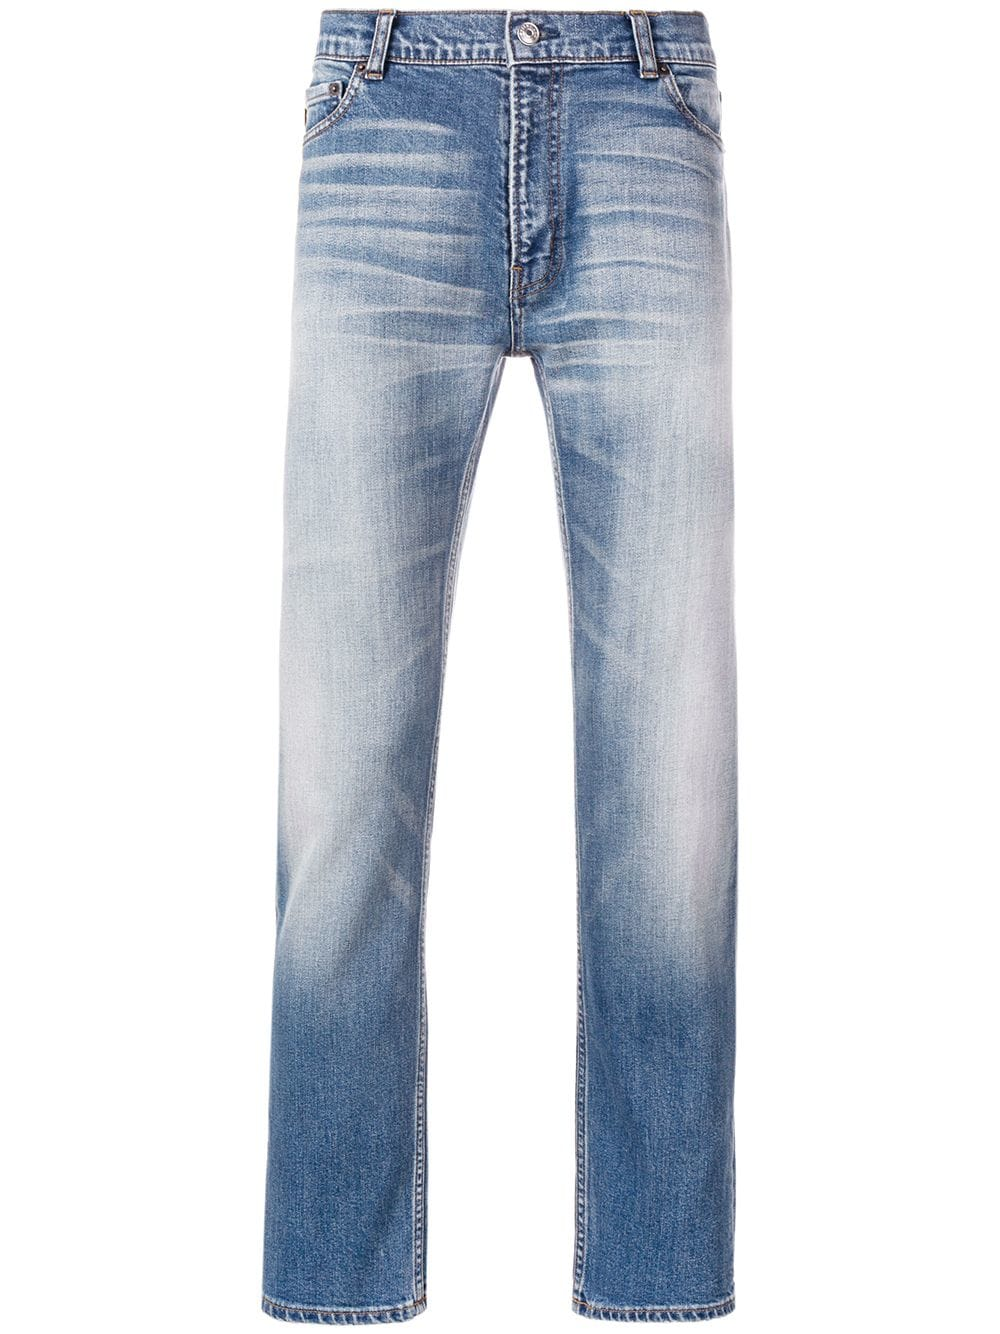 blue cotton blend slim-fit jeans  BALENCIAGA |  | 534525-TAP078469